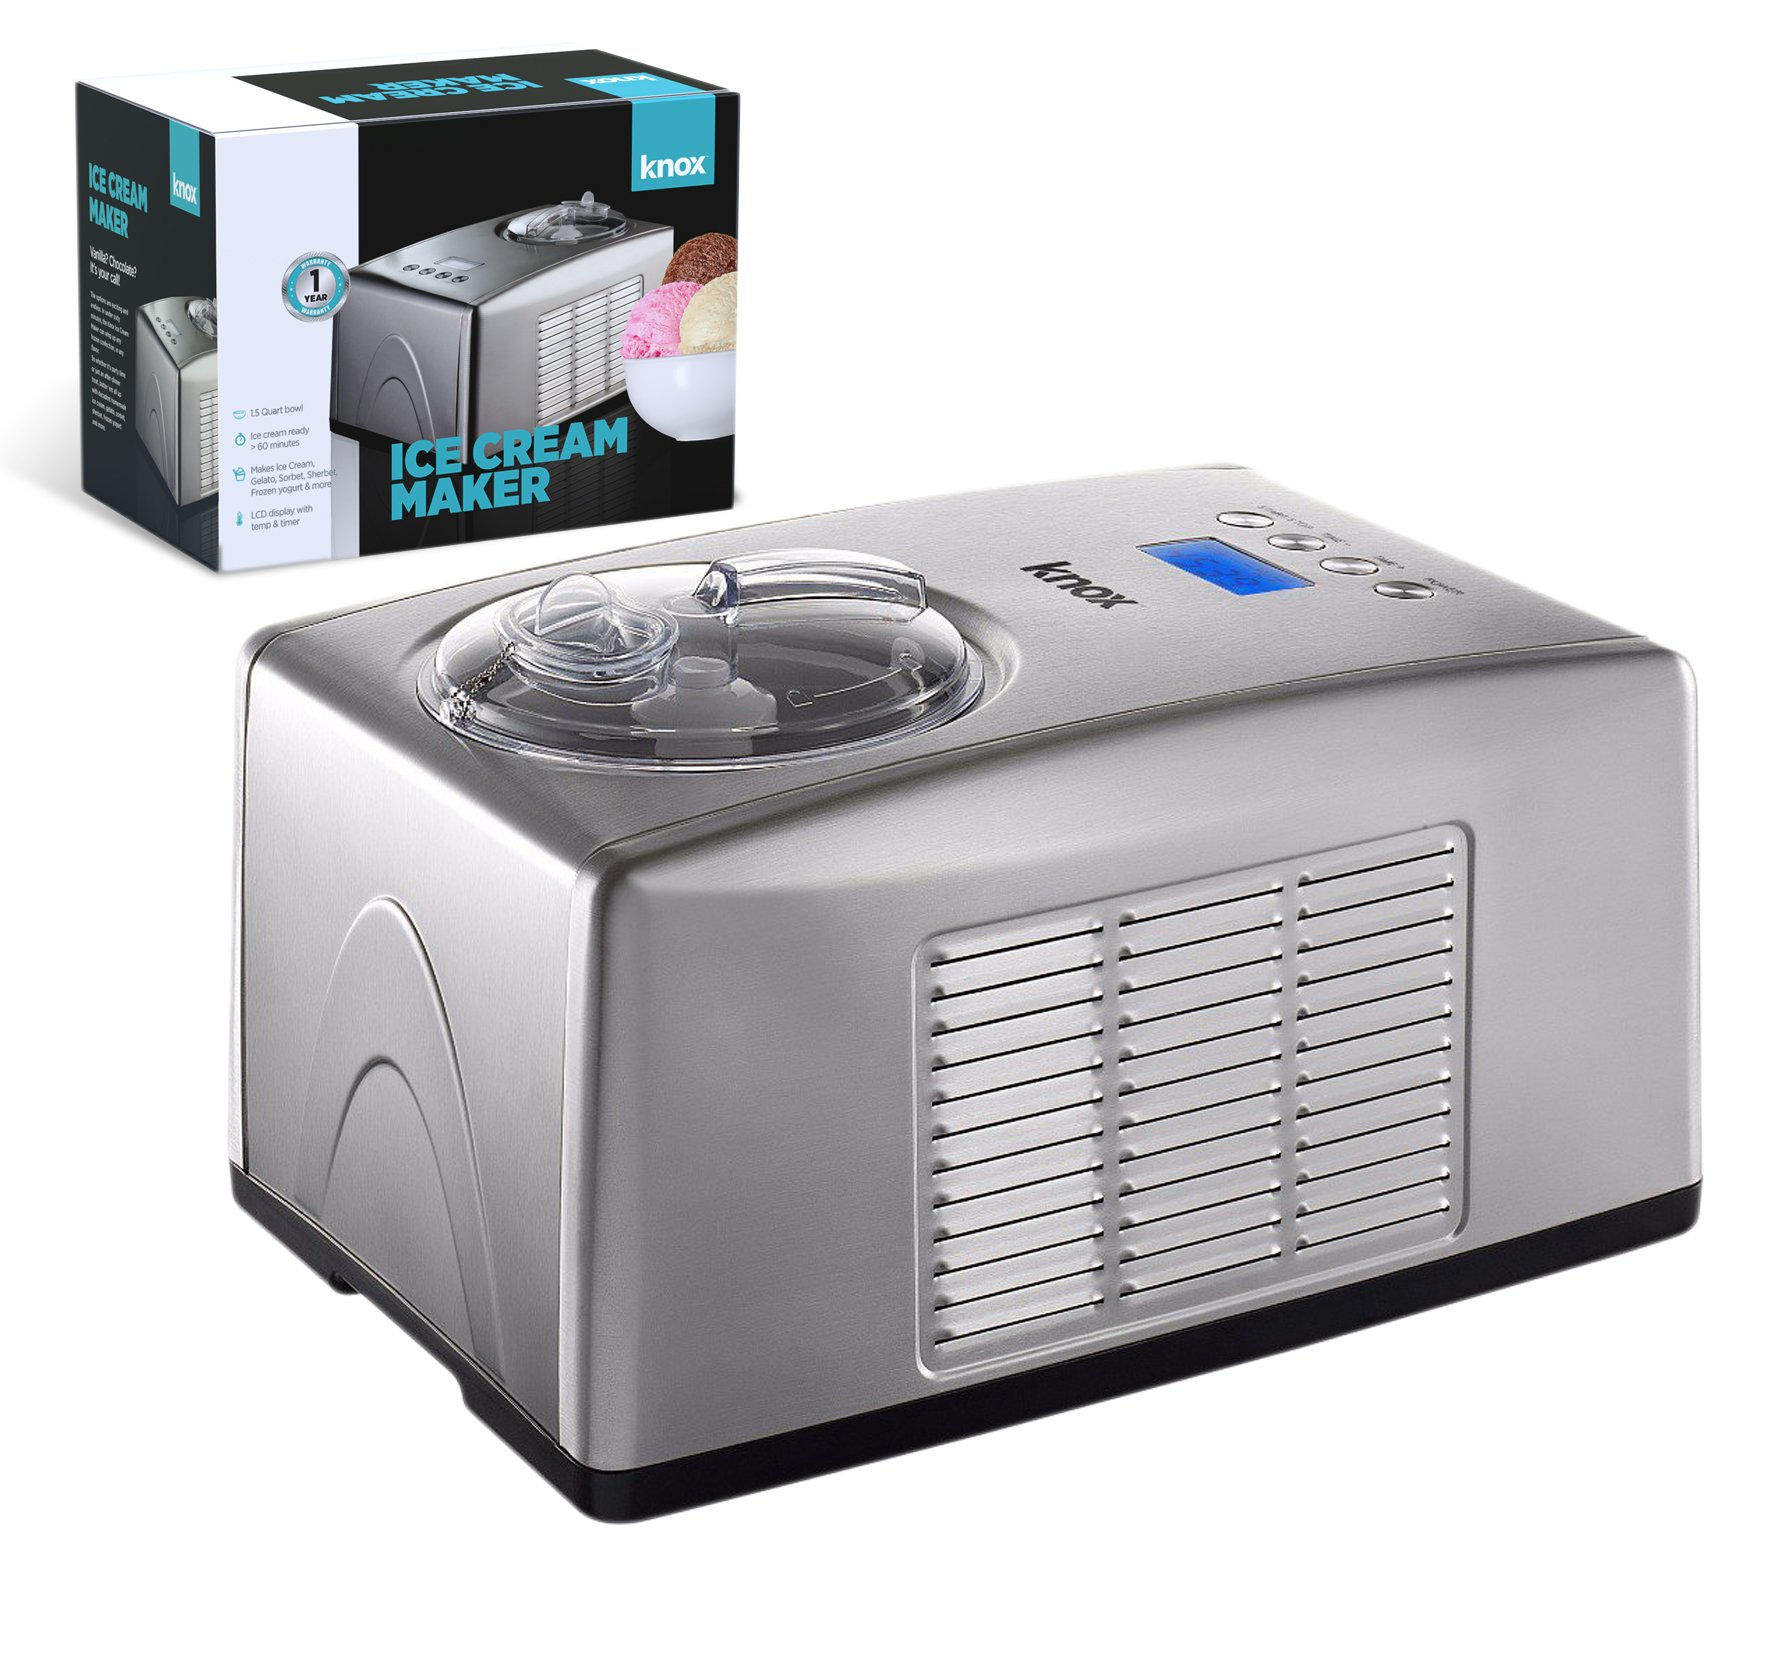 Knox Automatic Ice Cream Maker - Makes Sorbet, Gelato and Frozen Yogurt Without ''Freezer Bowl'' - Commercial Grade Compressor - 1.5 Quart Bowl